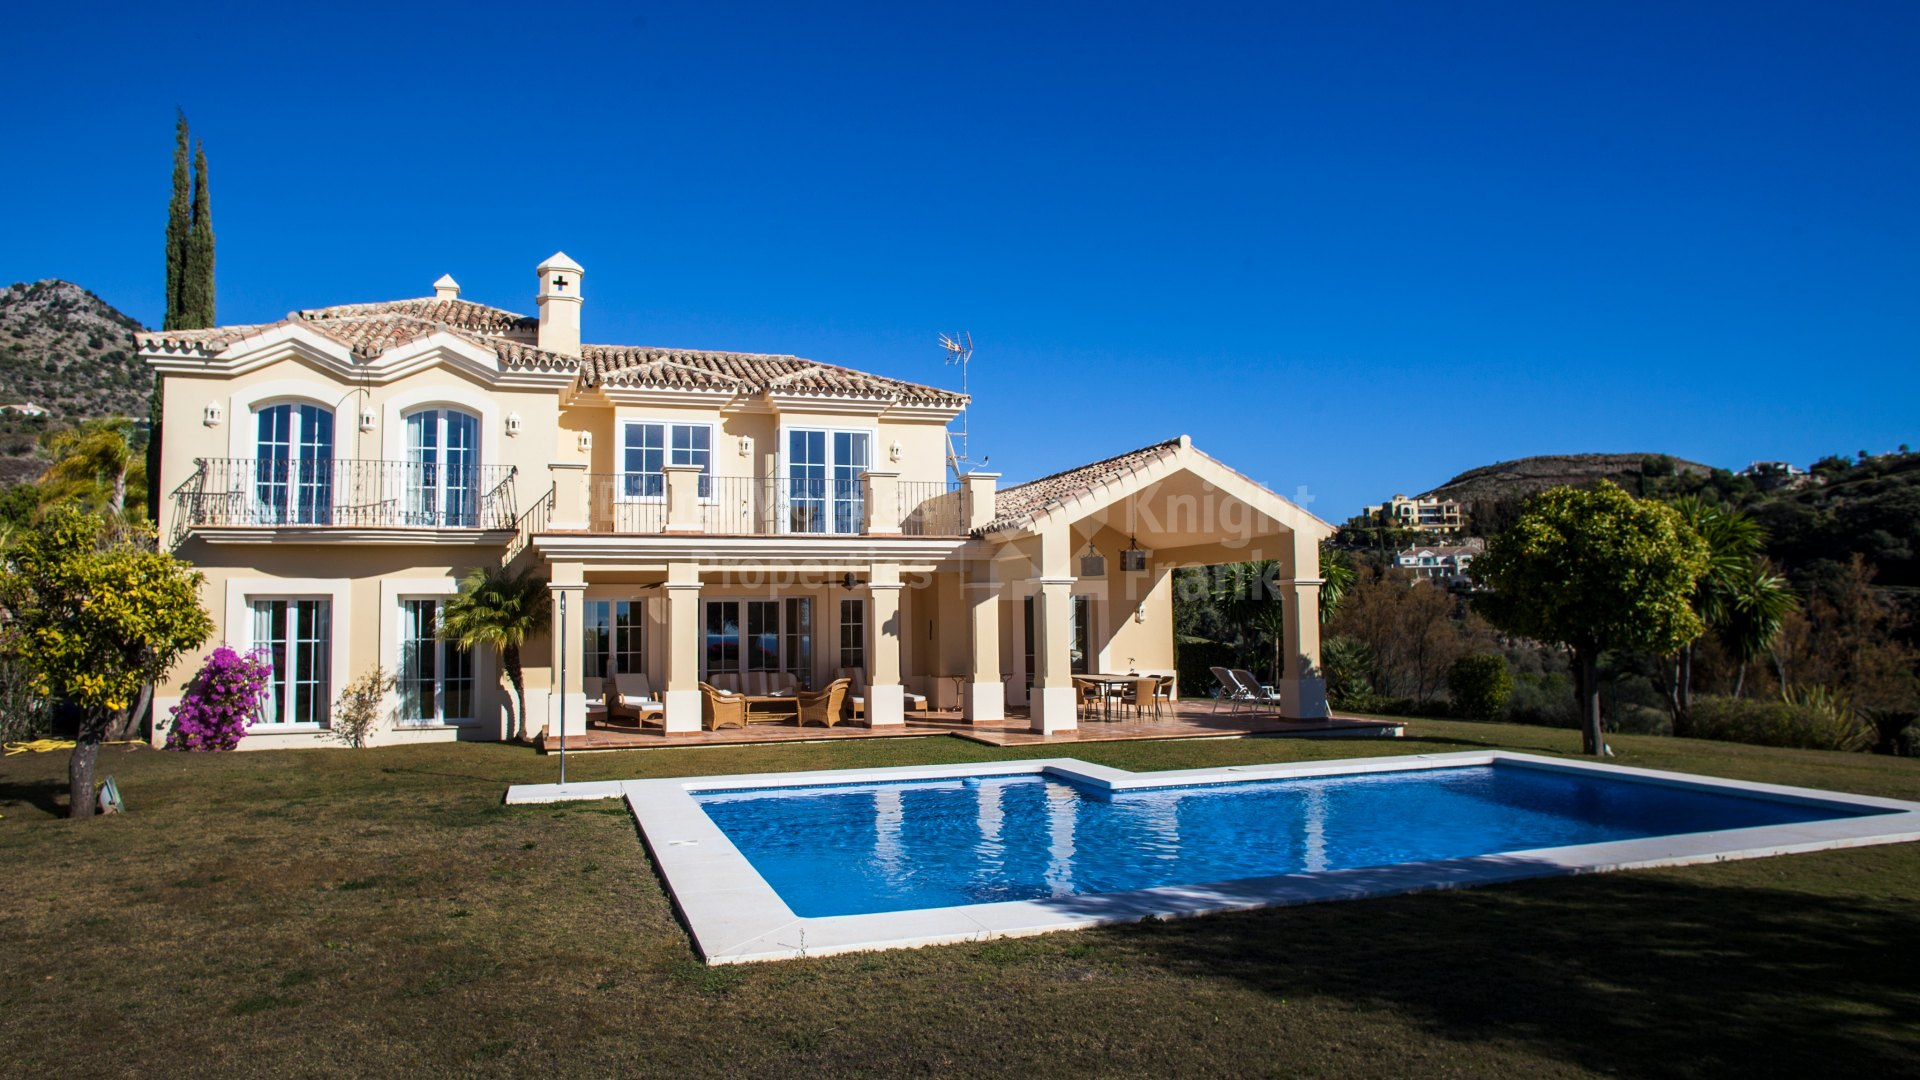 Marbella Club Golf Resort, Villa in gated and secure location